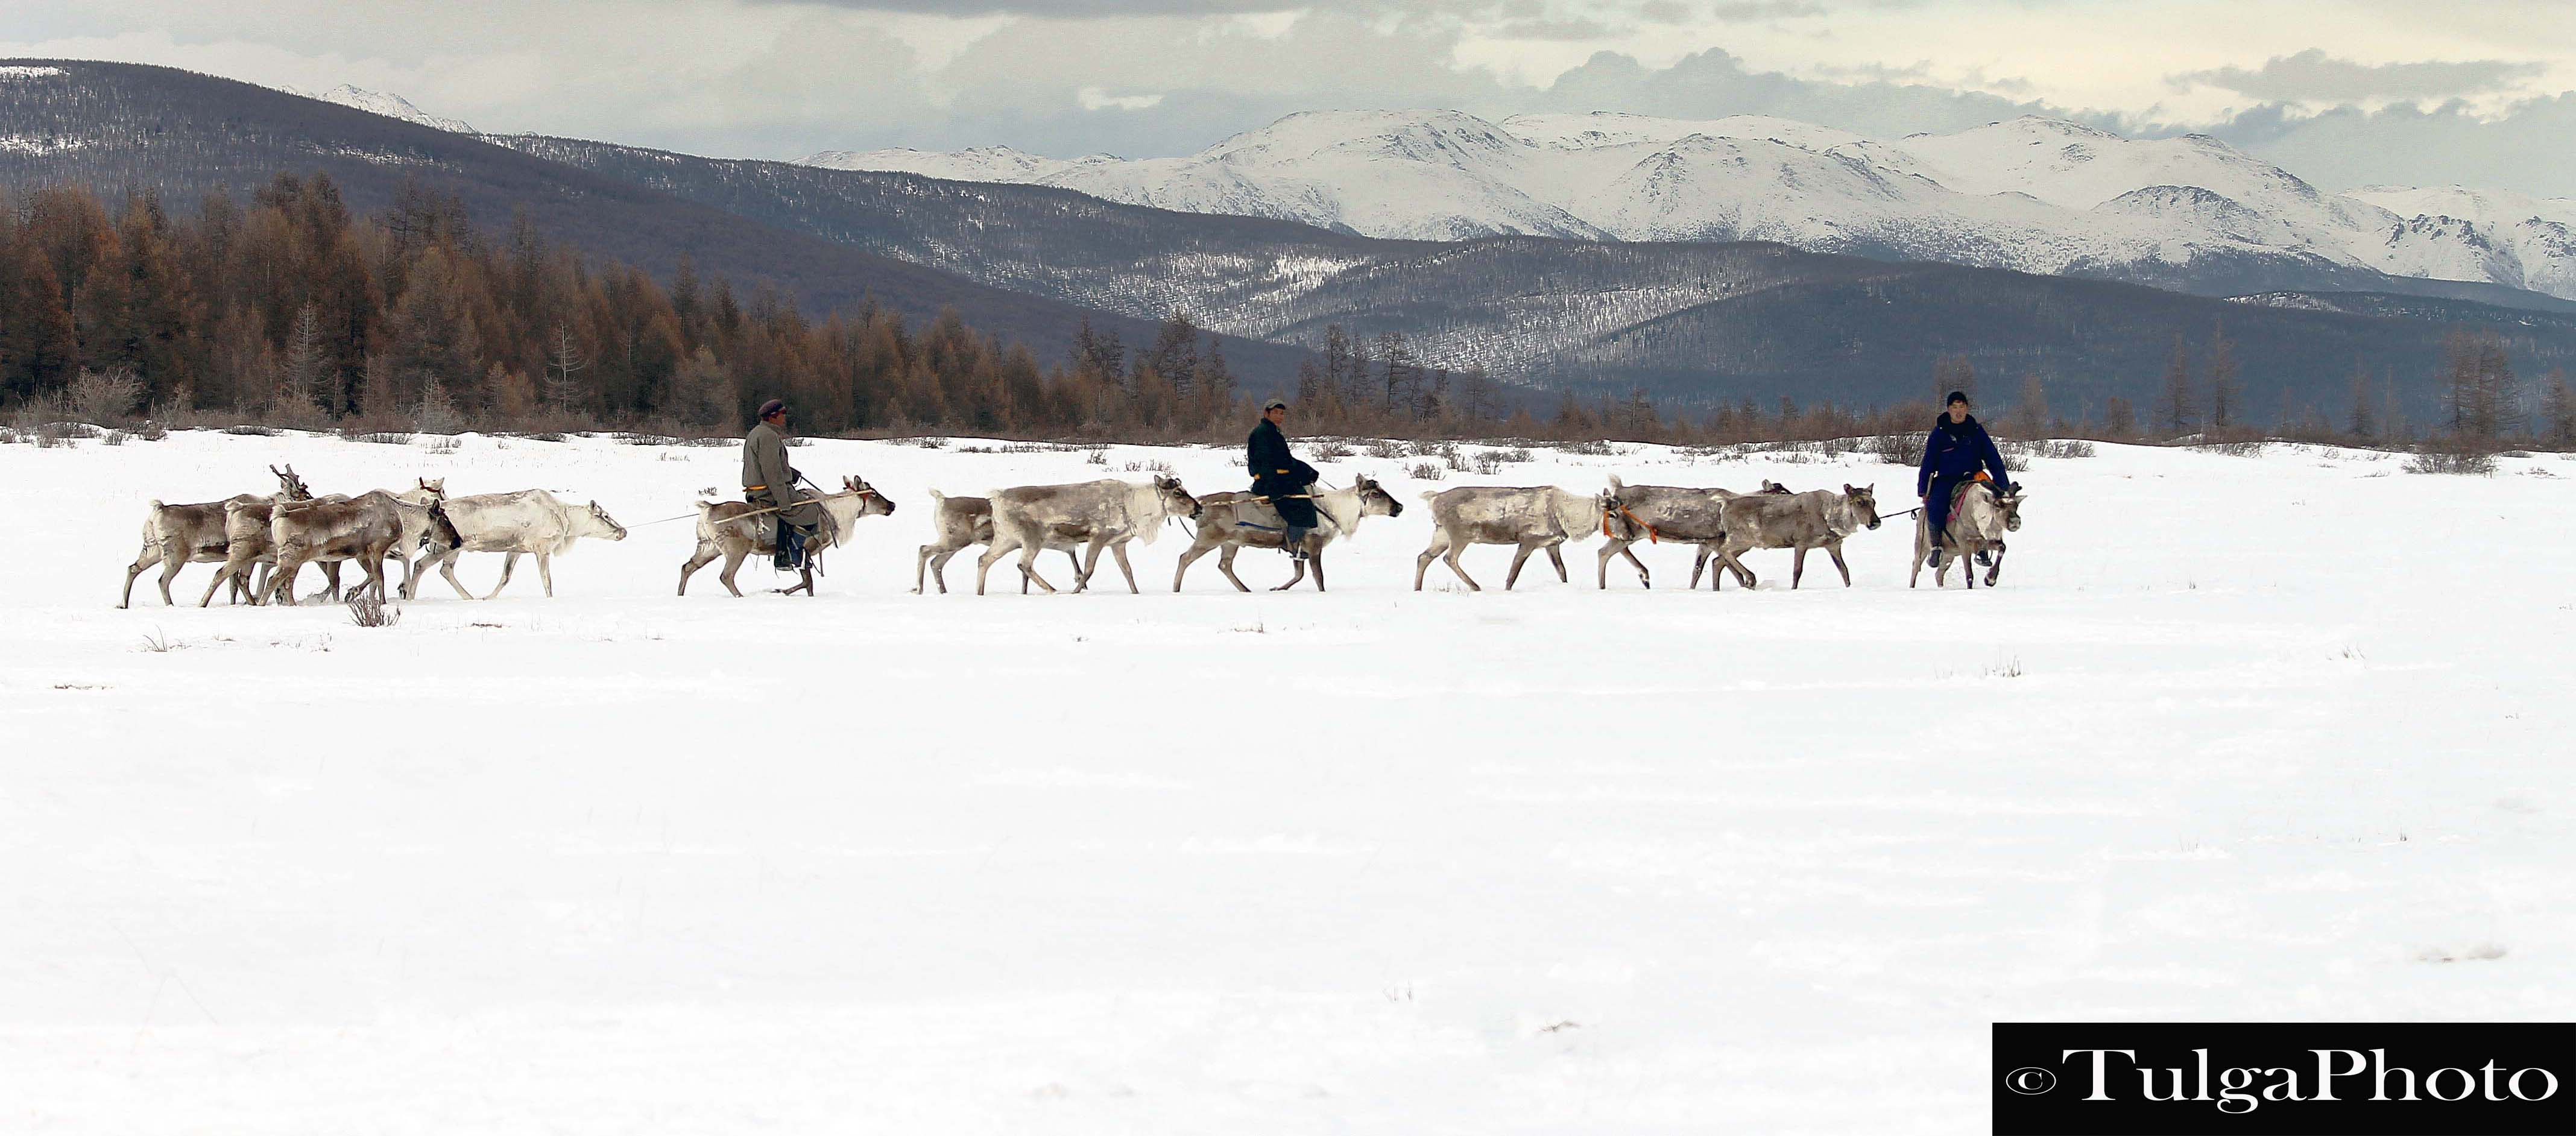 Nomadic Migration- Reindeer herders on the move